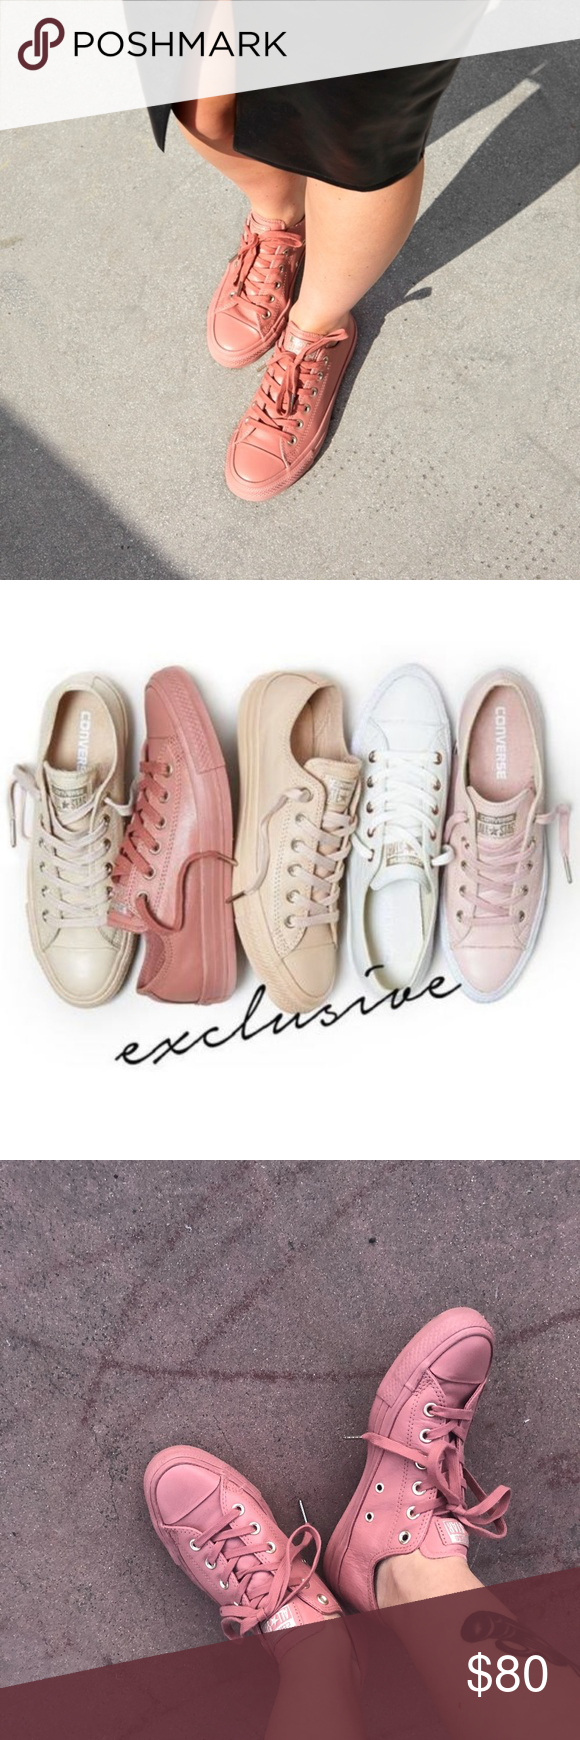 ac2aeb28d87b2d Converse All Star Ox Leather Holiday Nude Collect New Desert Sun Converse  All Star Ox Leather Holiday Nude Collection Size 9 (limited edition.